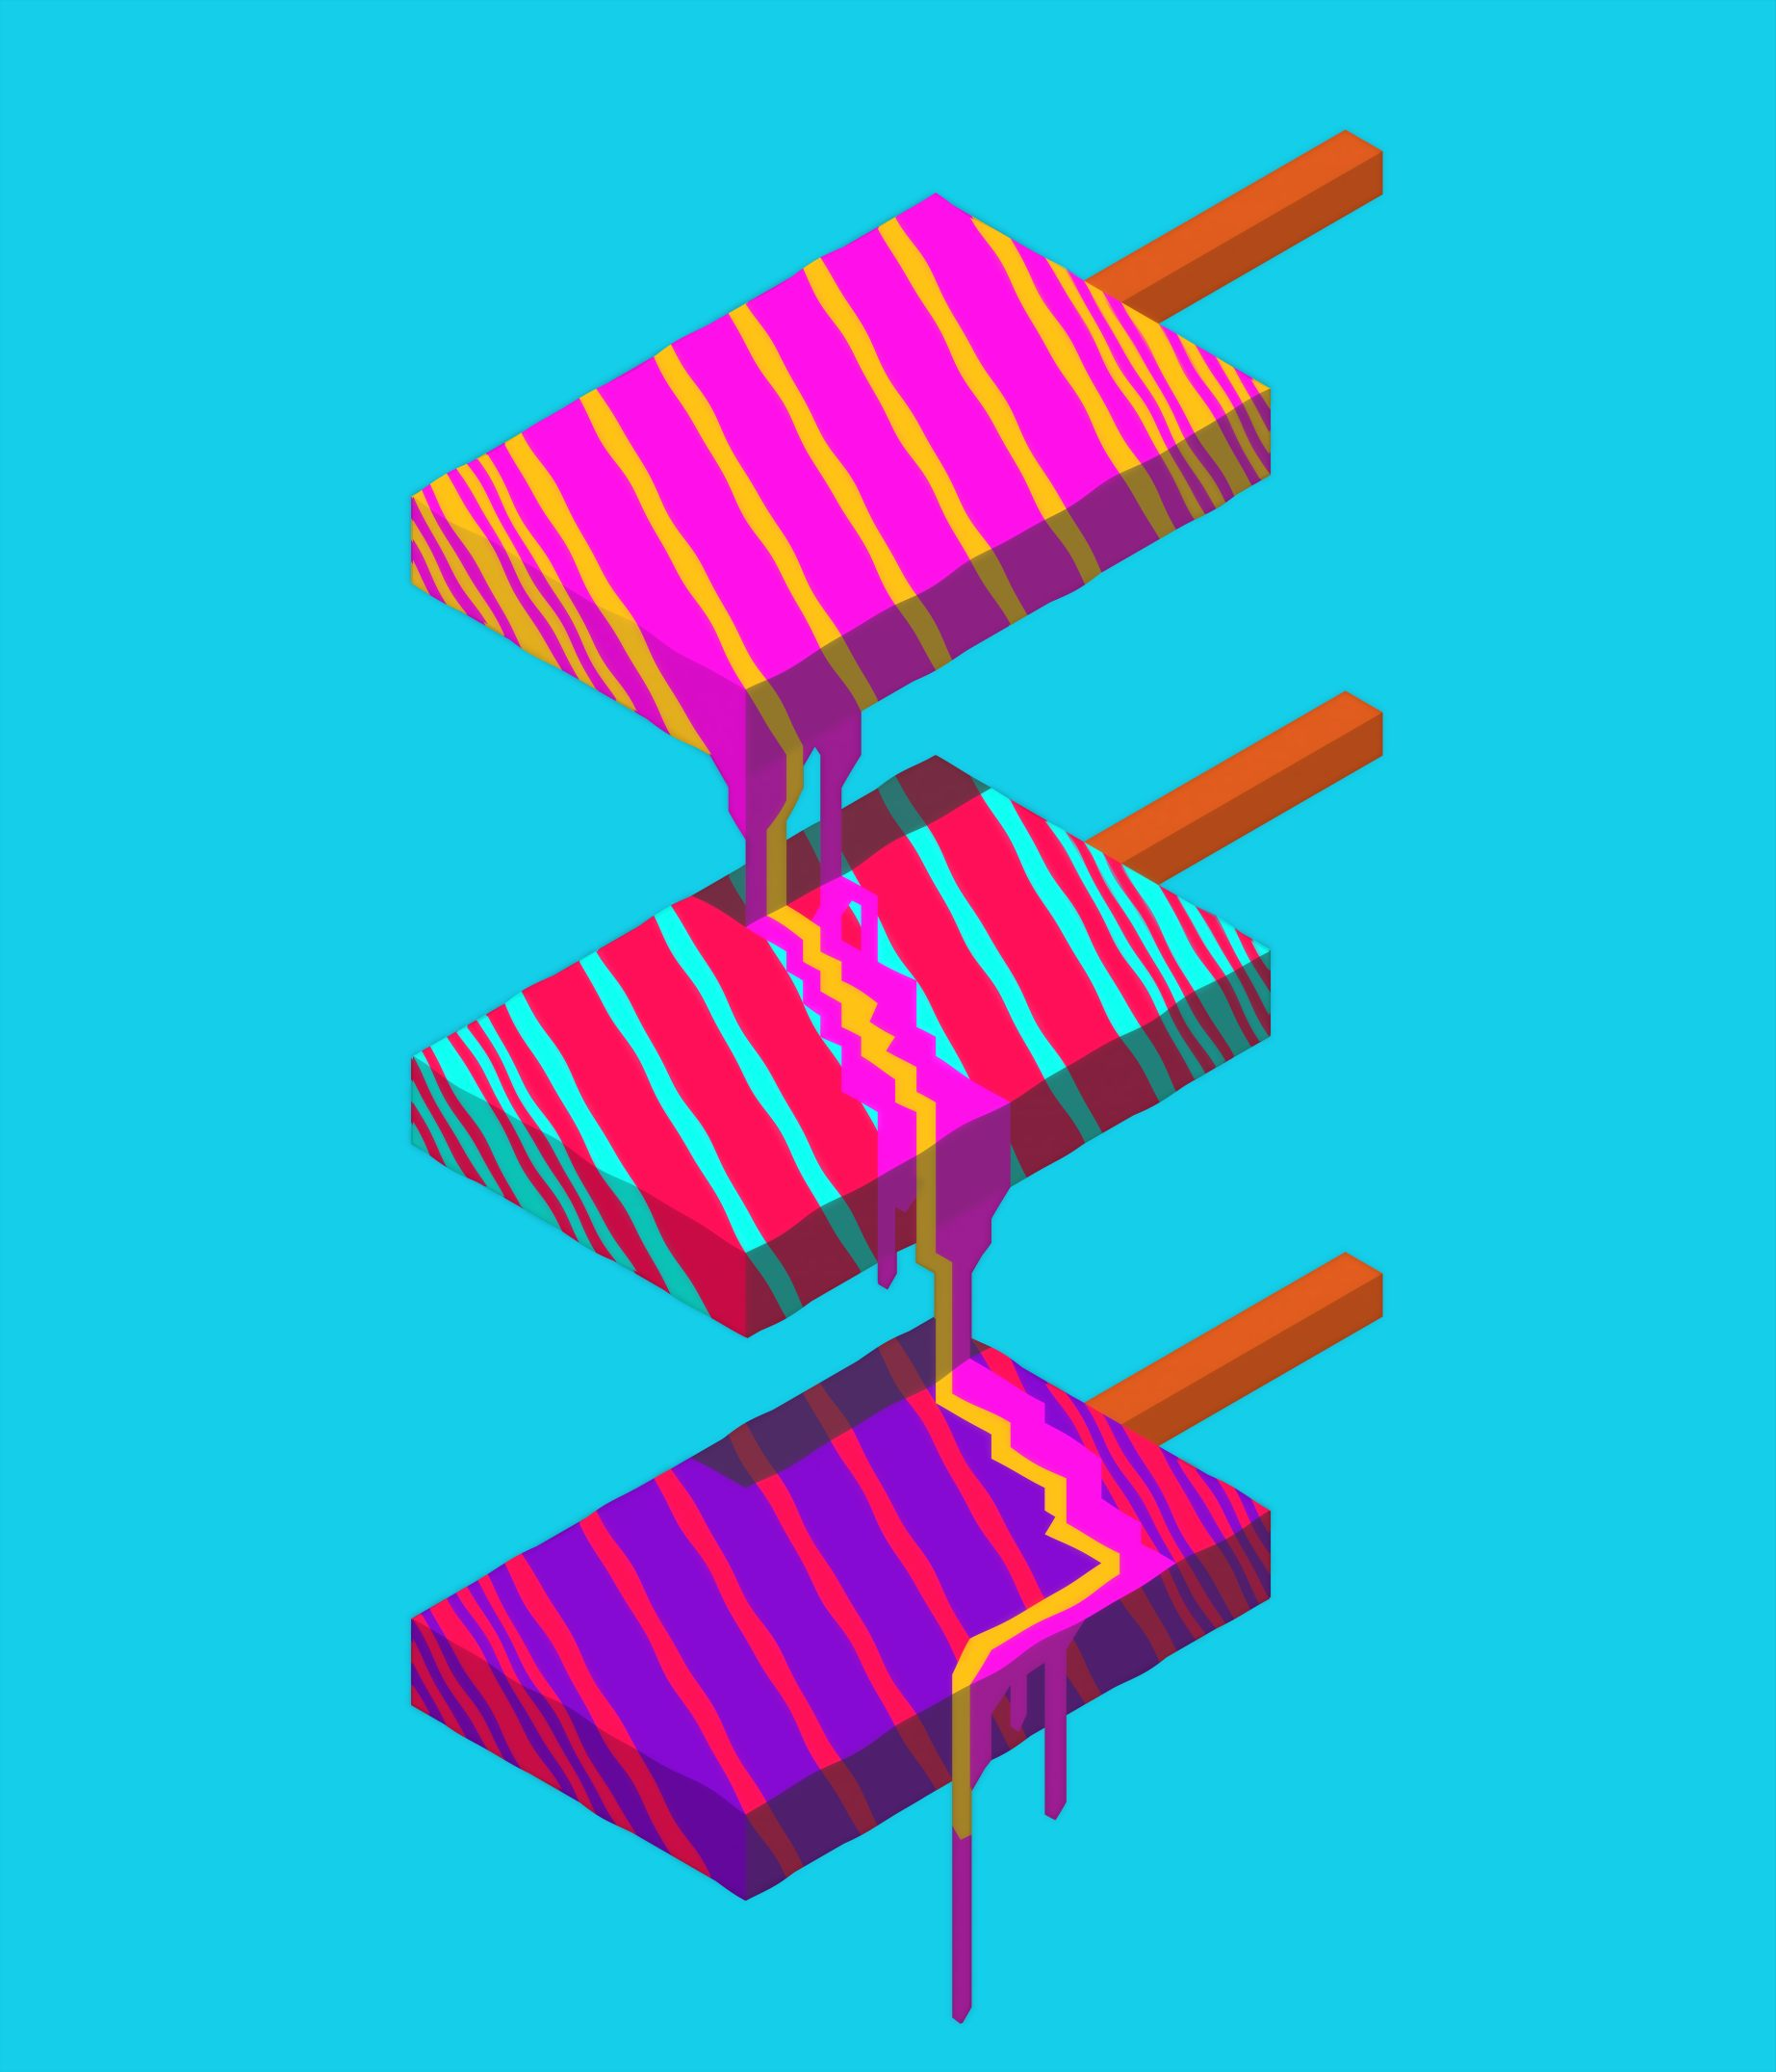 Neoretro Popsicle Marmoset Hexels 2.5 and Adobe Photoshop CC. (2017)